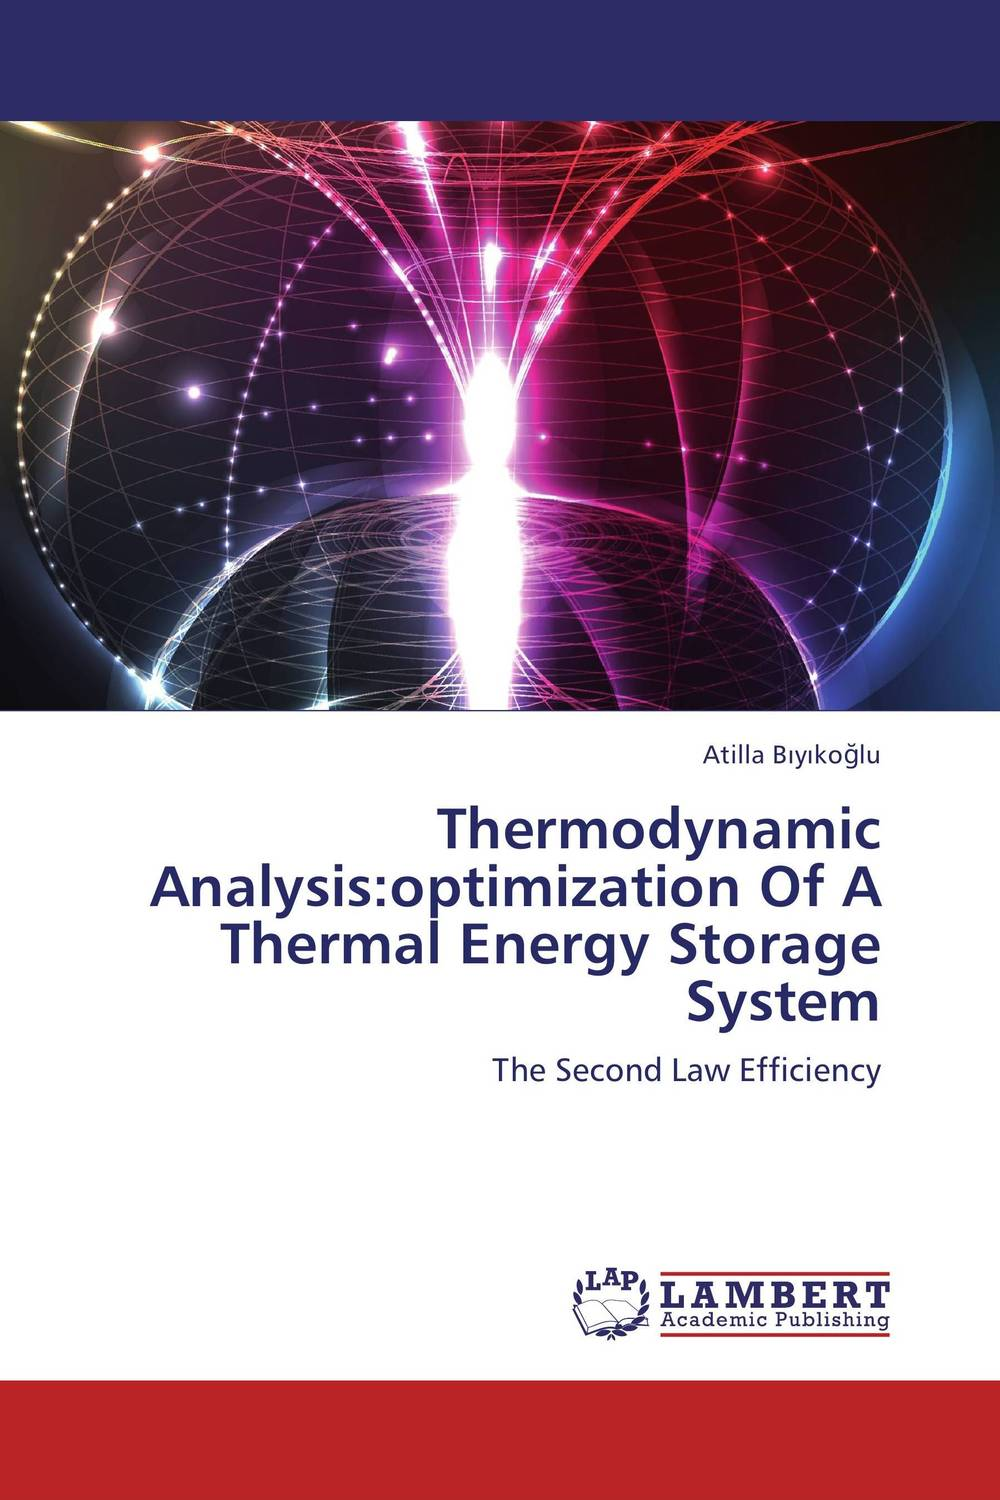 Thermodynamic Analysis:optimization Of A Thermal Energy Storage System economizer forces heat transmission from liquid to vapour effectively and keep pressure drop down to a reasonable level